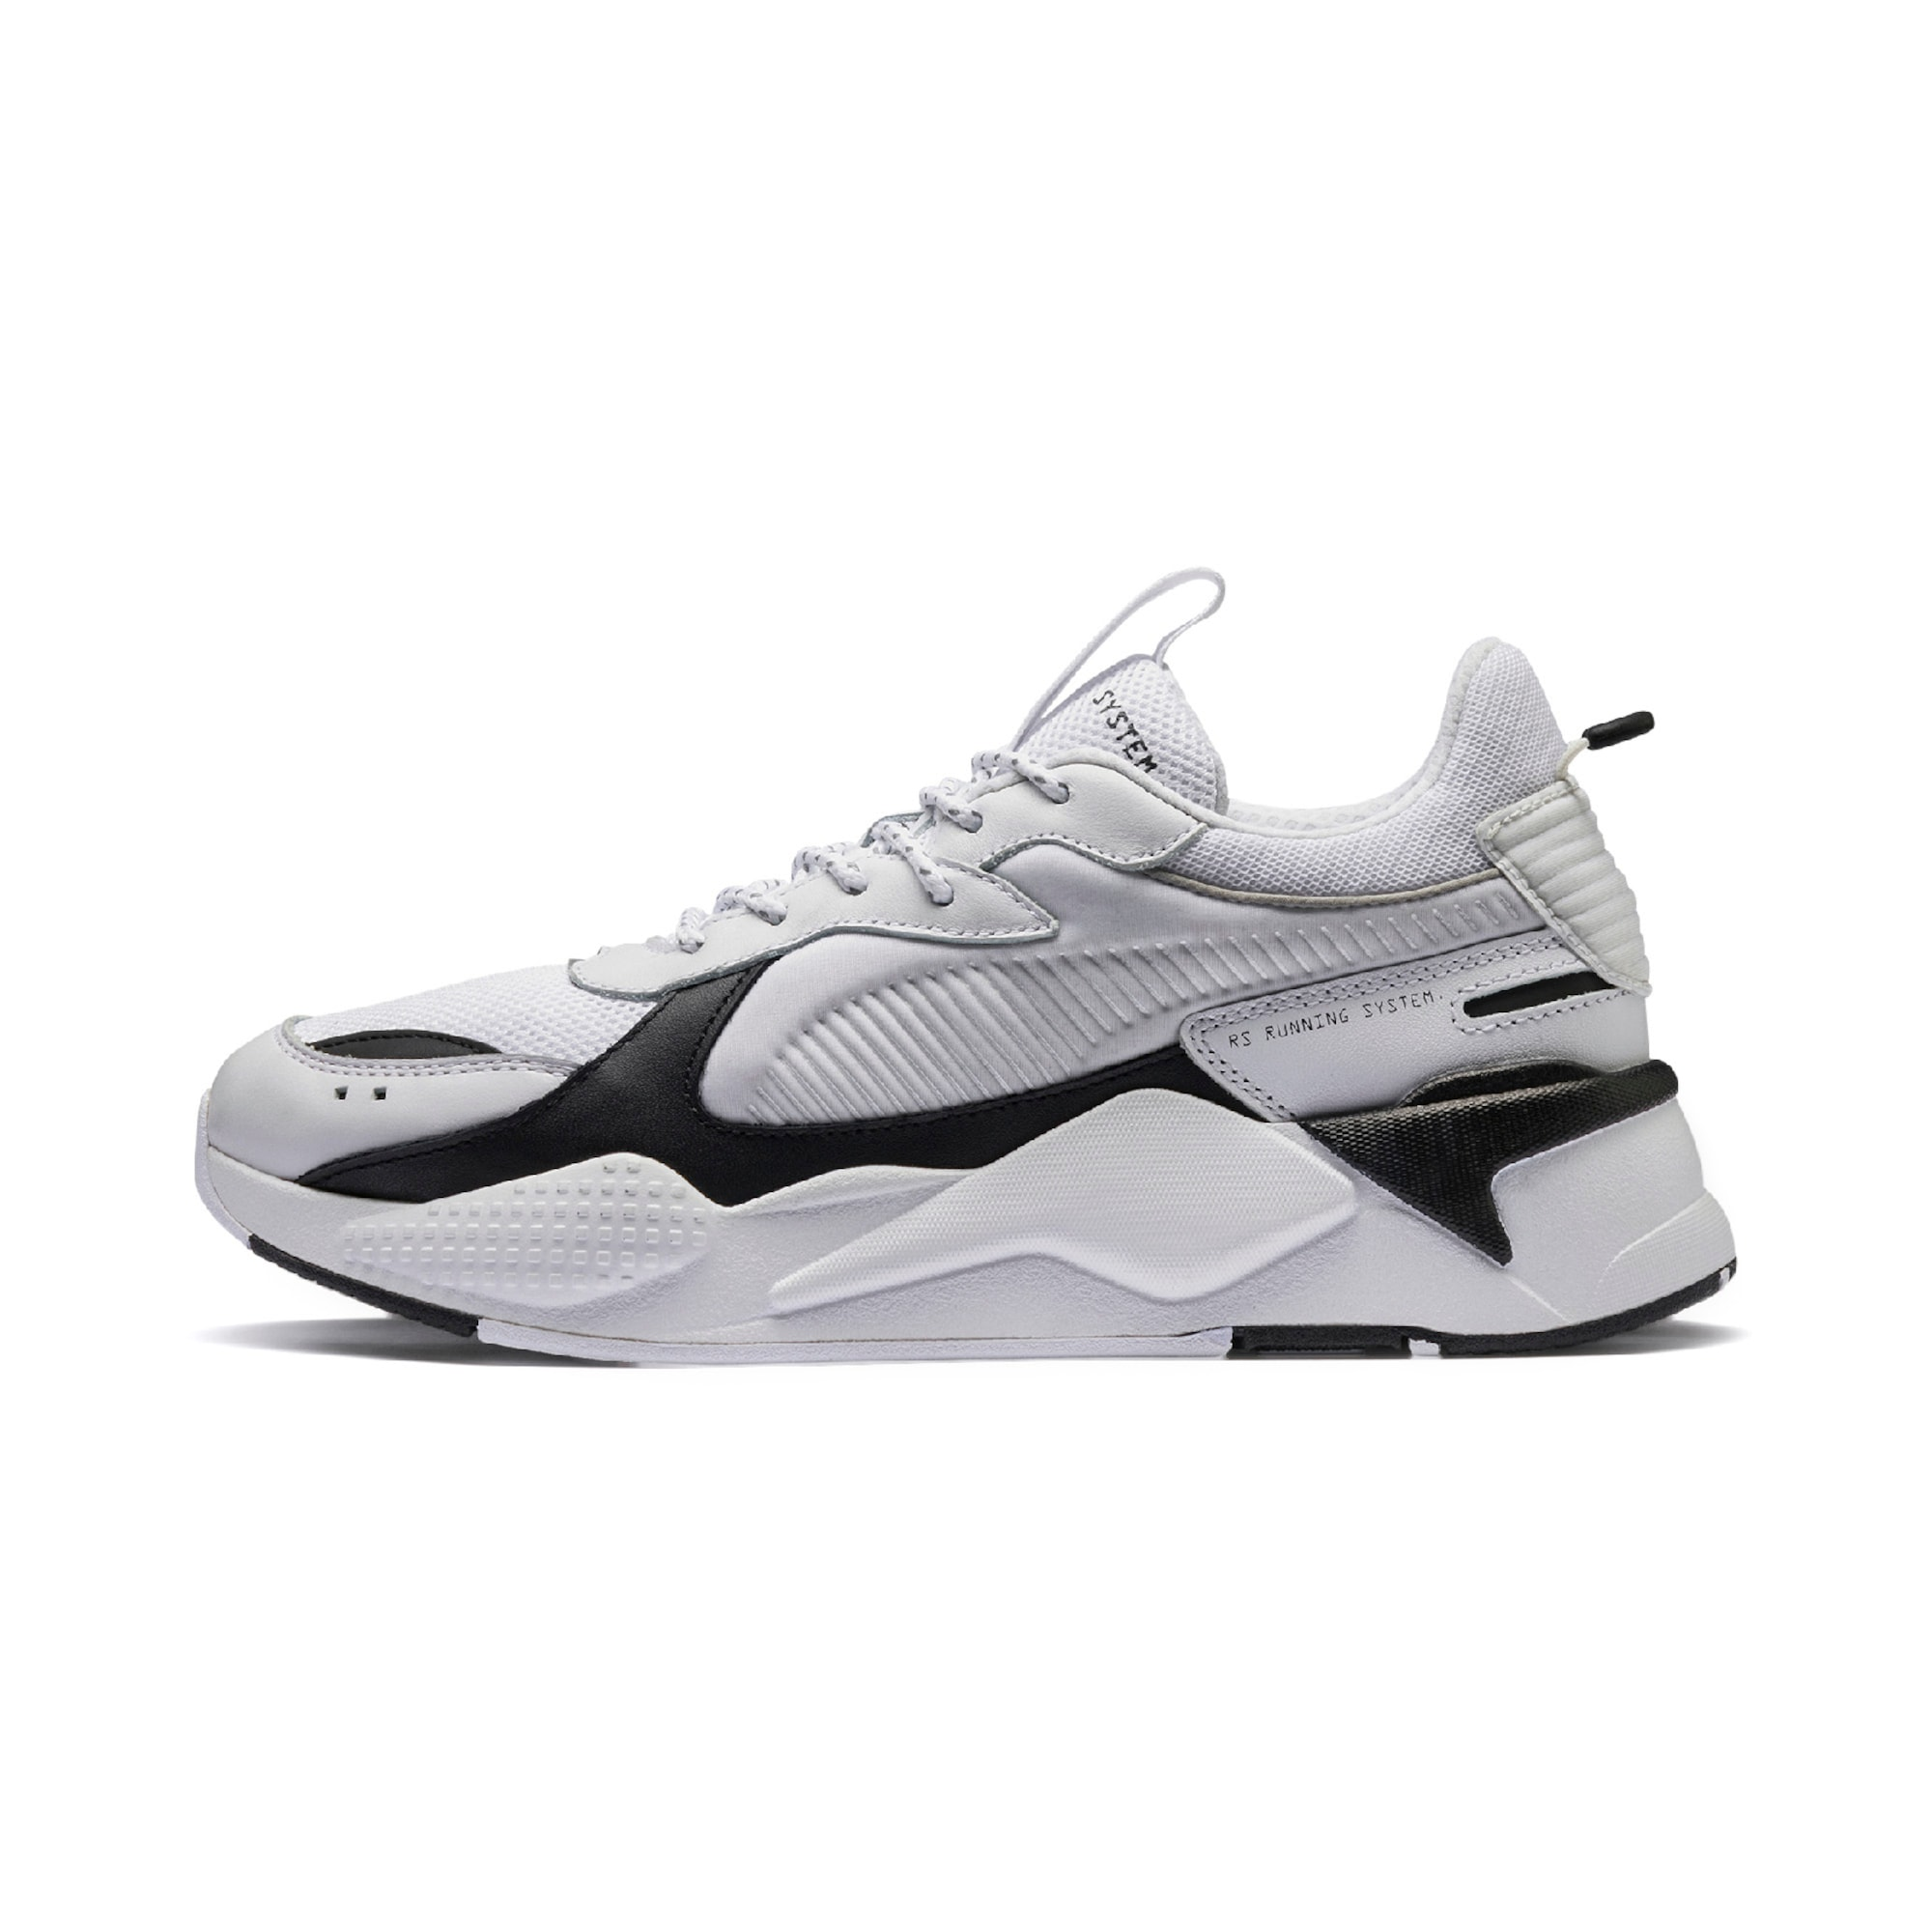 PUMA, Dames Sneakers laag 'RS-X CORE', zwart / wit